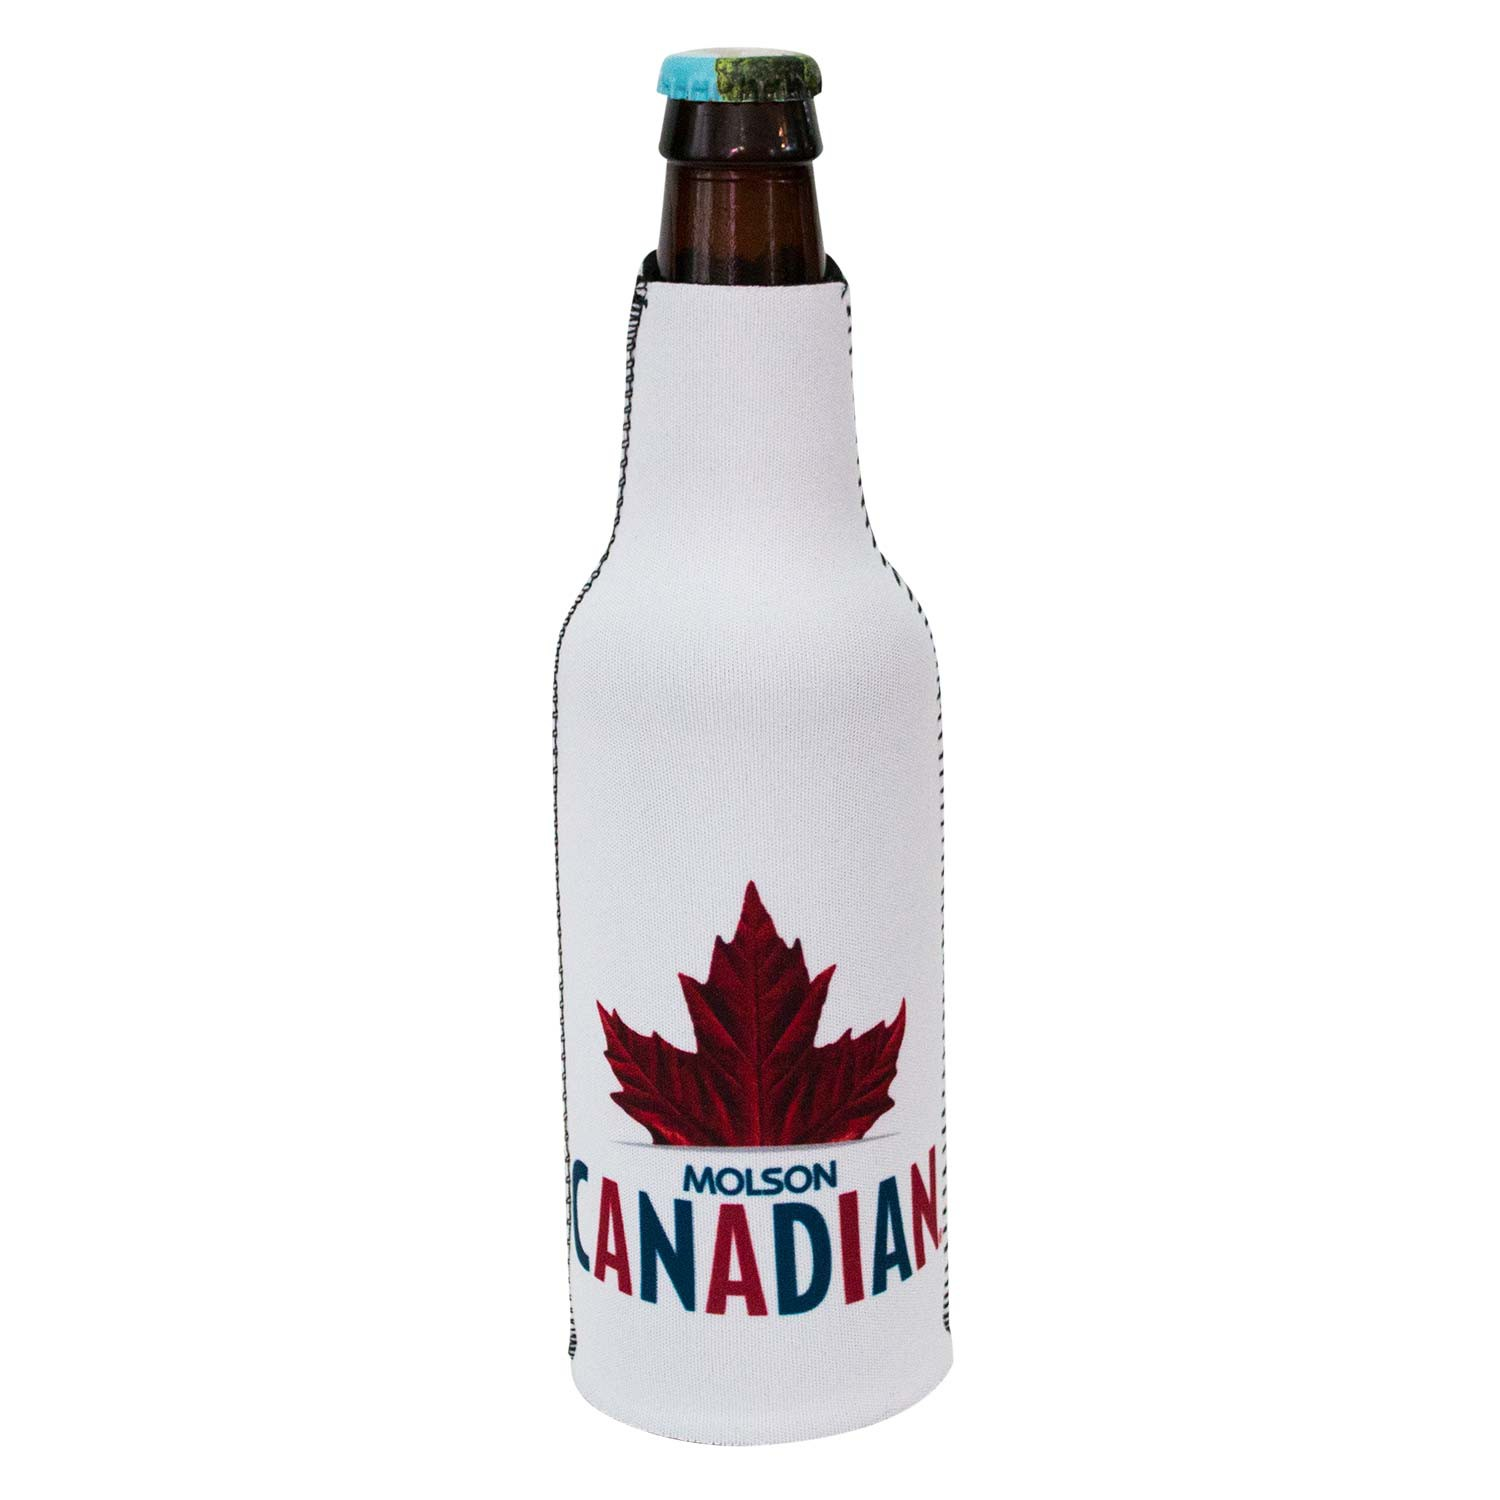 Molson Canadian Leaf Logo Bottle Suit Cooler